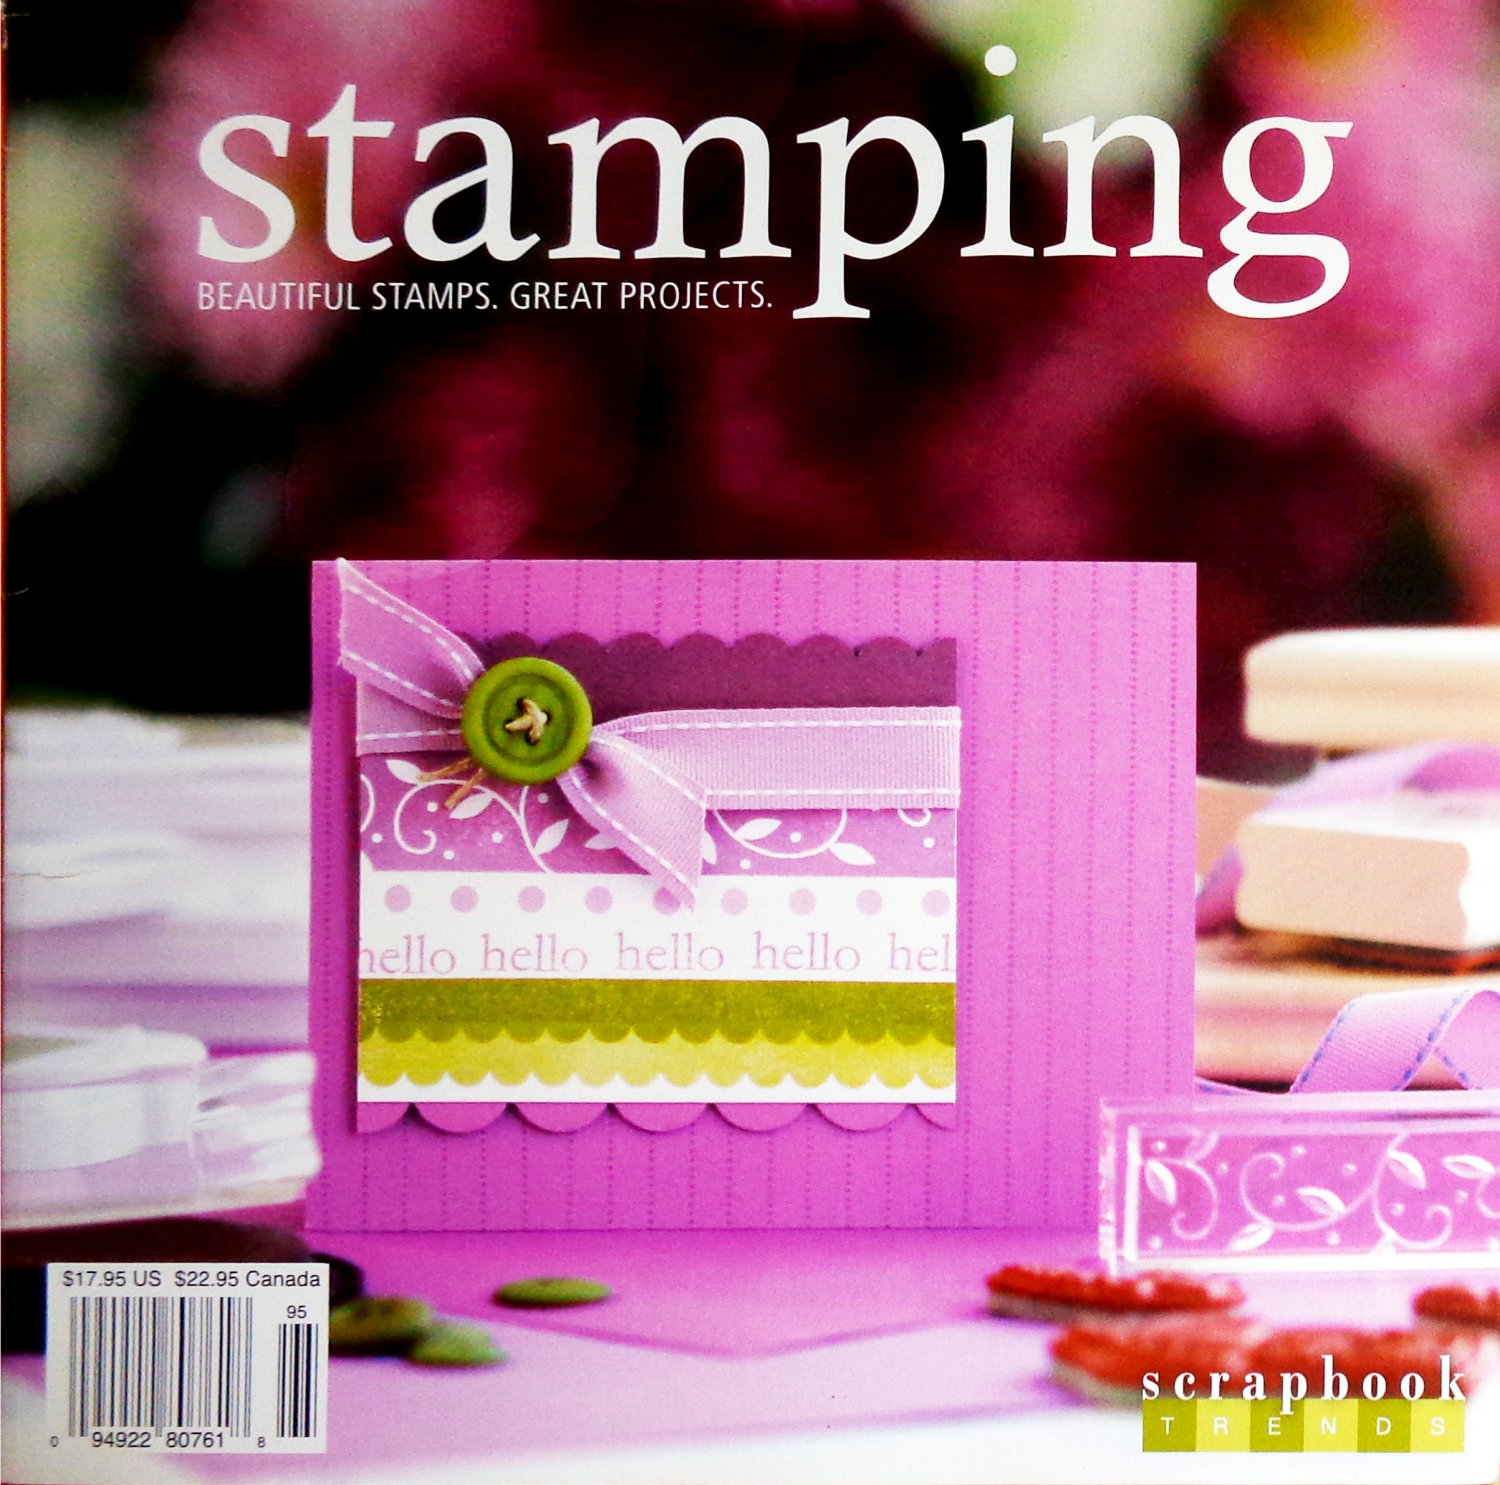 Scrapbook Trends Stamping Magazine 2009